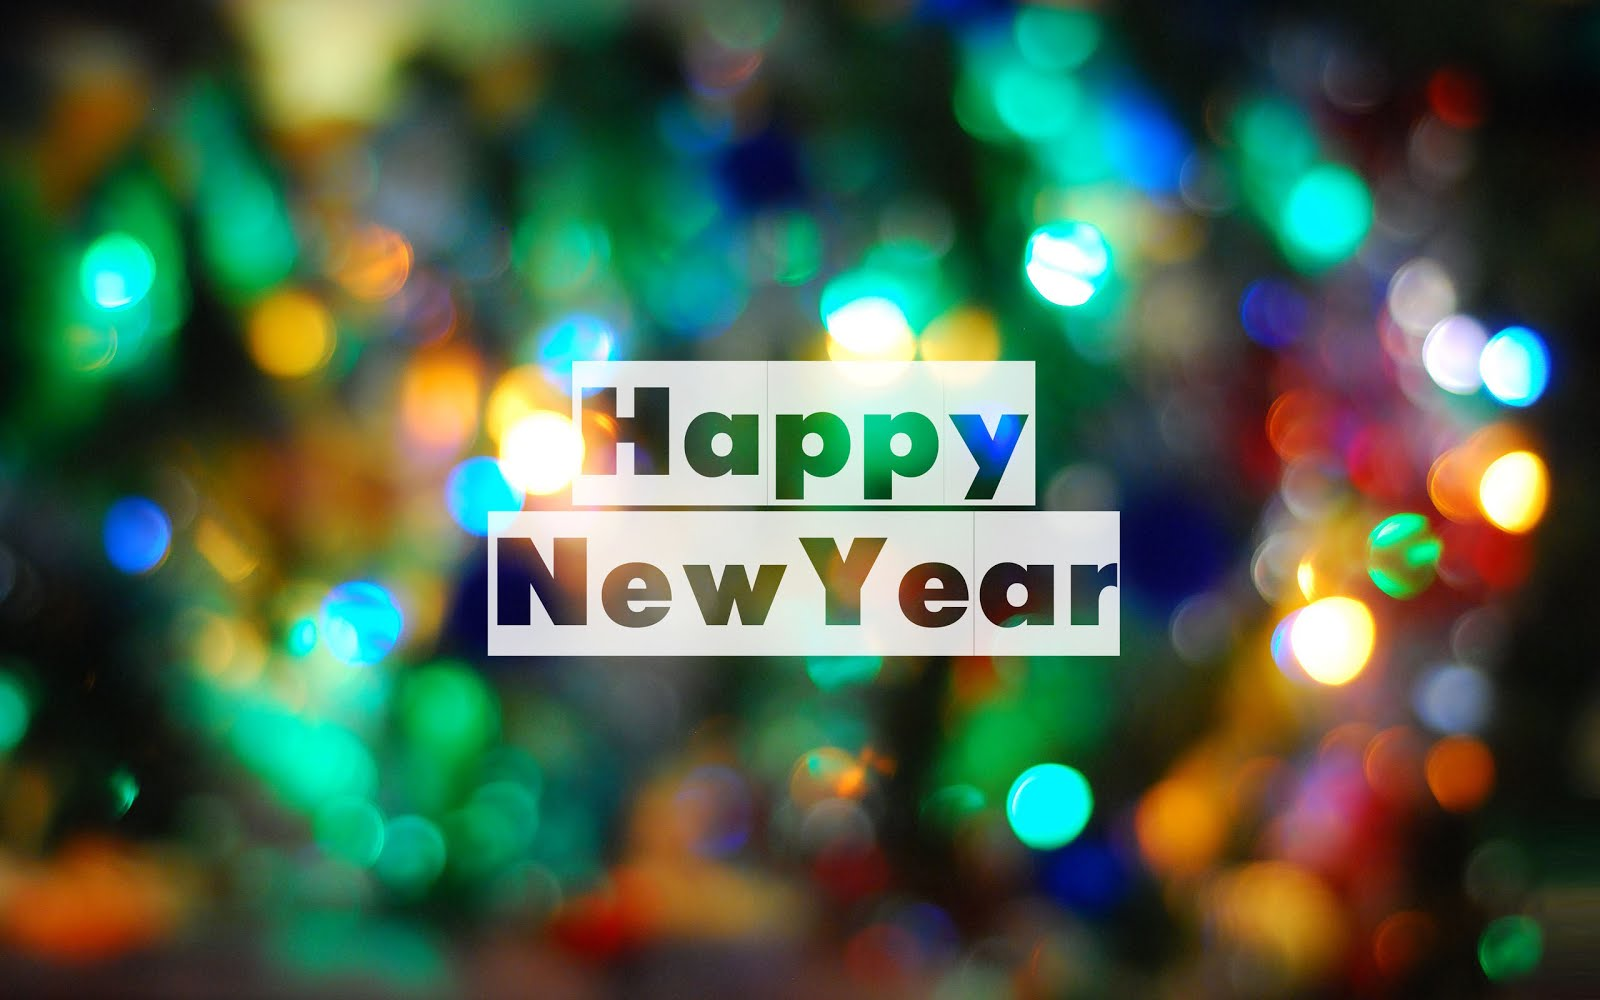 Happy New Year 2014 Download Image Of Happy New Year 2014 Greeting